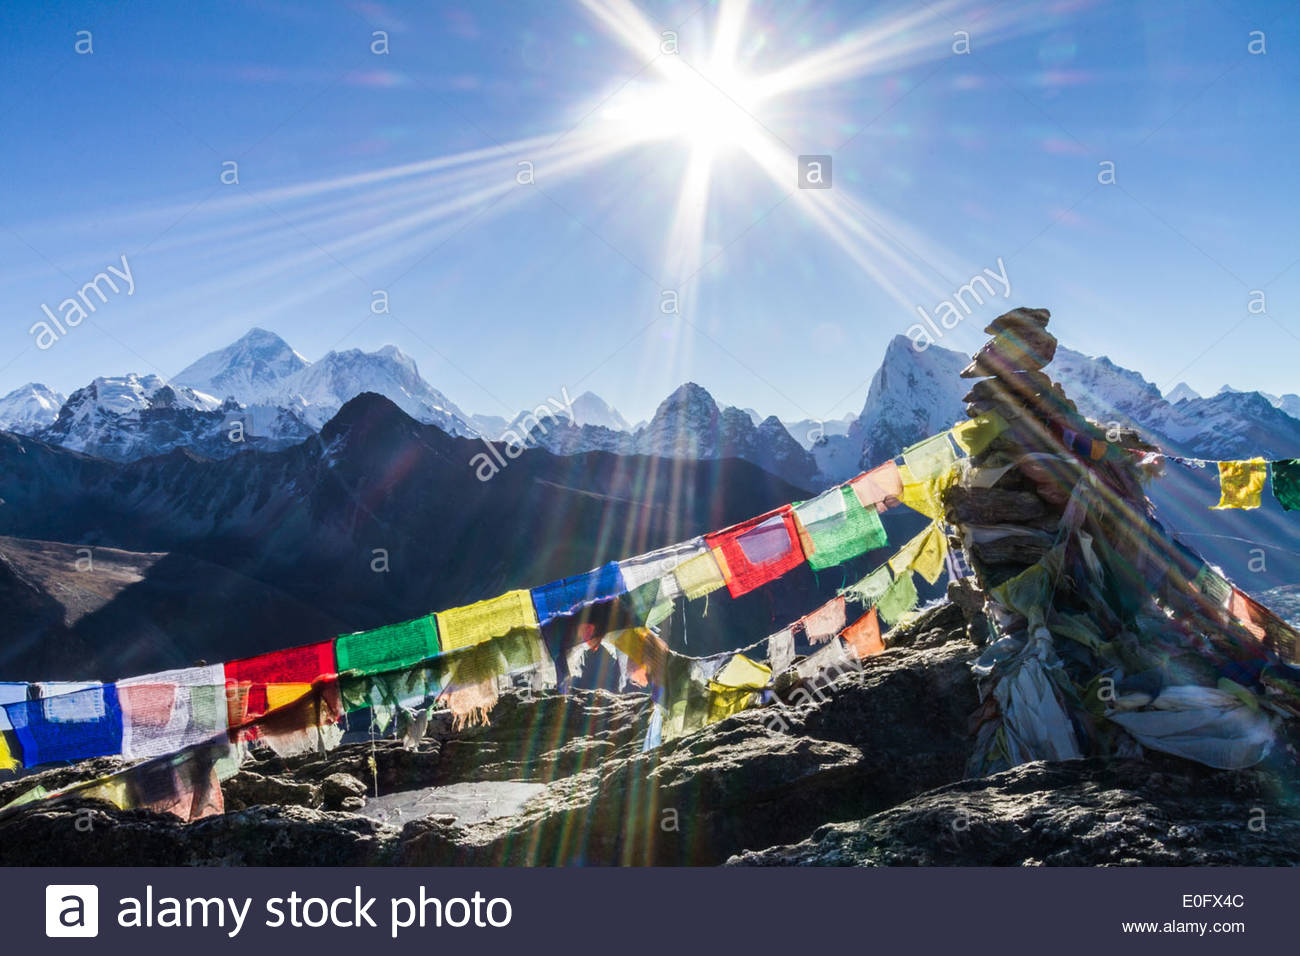 The Sun Hovers Above A Rock Cairn Adorned With Prayer Flags With Mount Everest In The Background, Gokyo Ri, Himalayas, Nepal - Stock Image